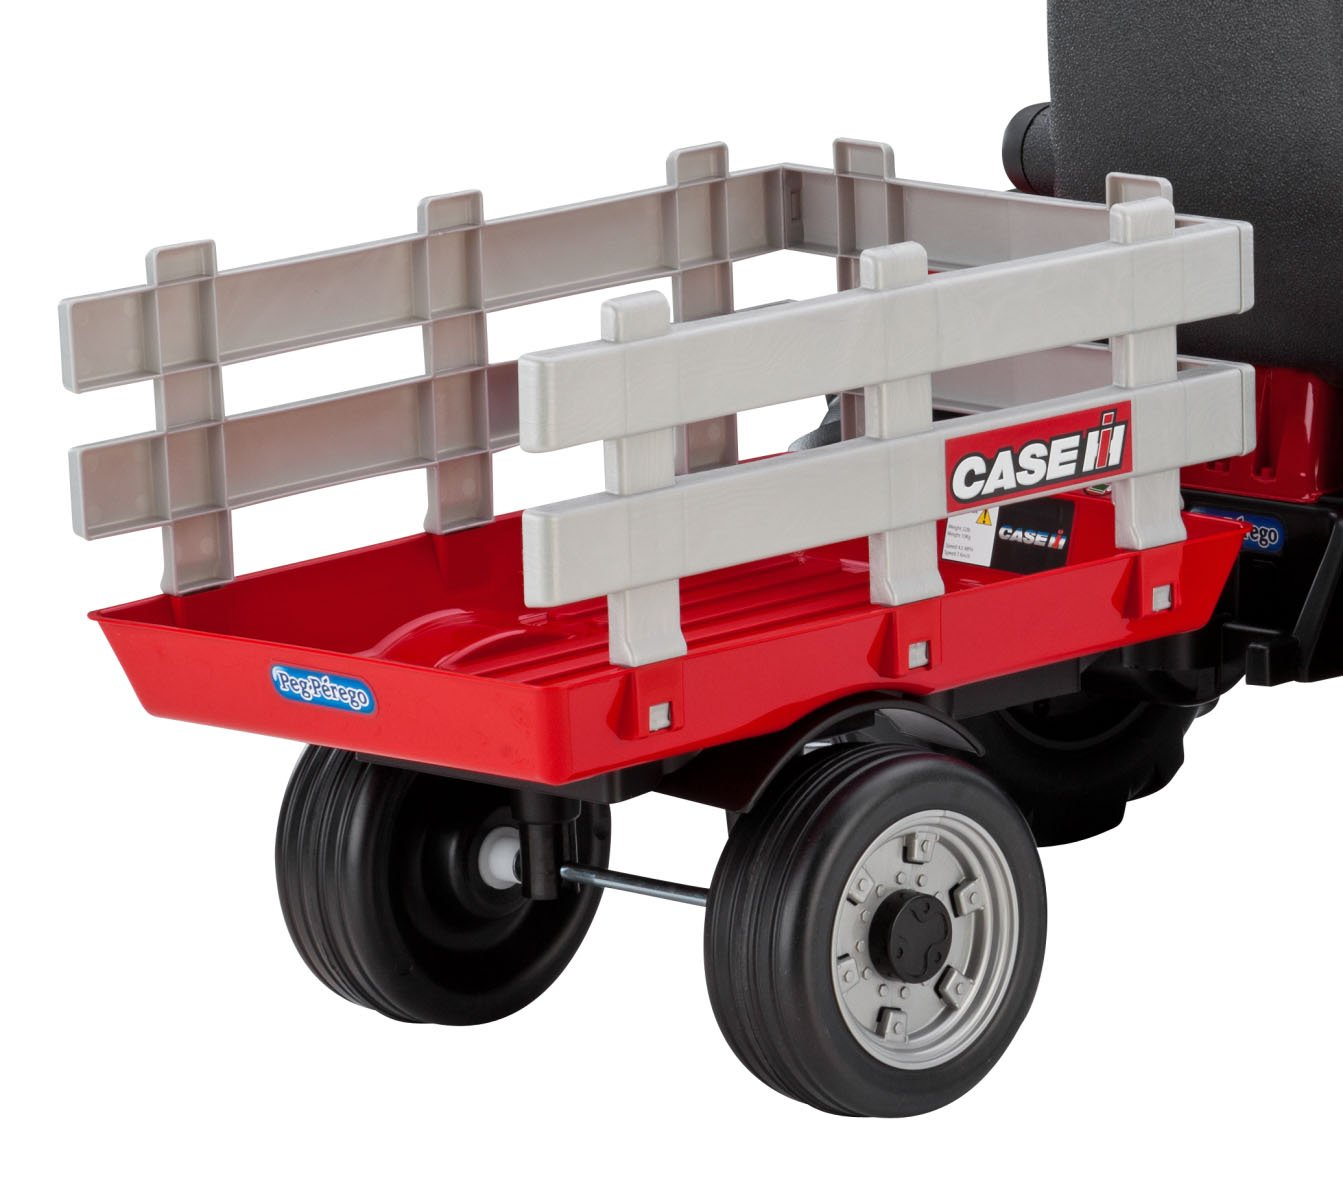 Peg Perego Case IH Magnum Tractor/Trailer by Peg Perego (Image #2)